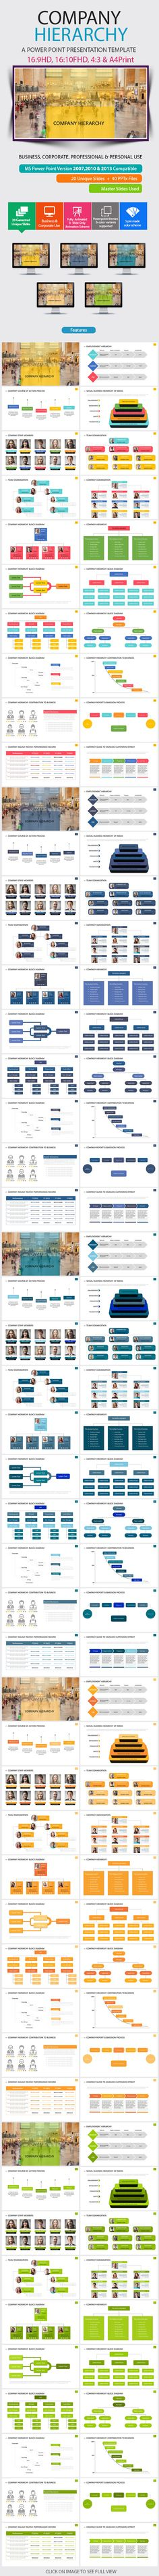 Company Hierarchy Power Point Presentation - Business PowerPoint Templates